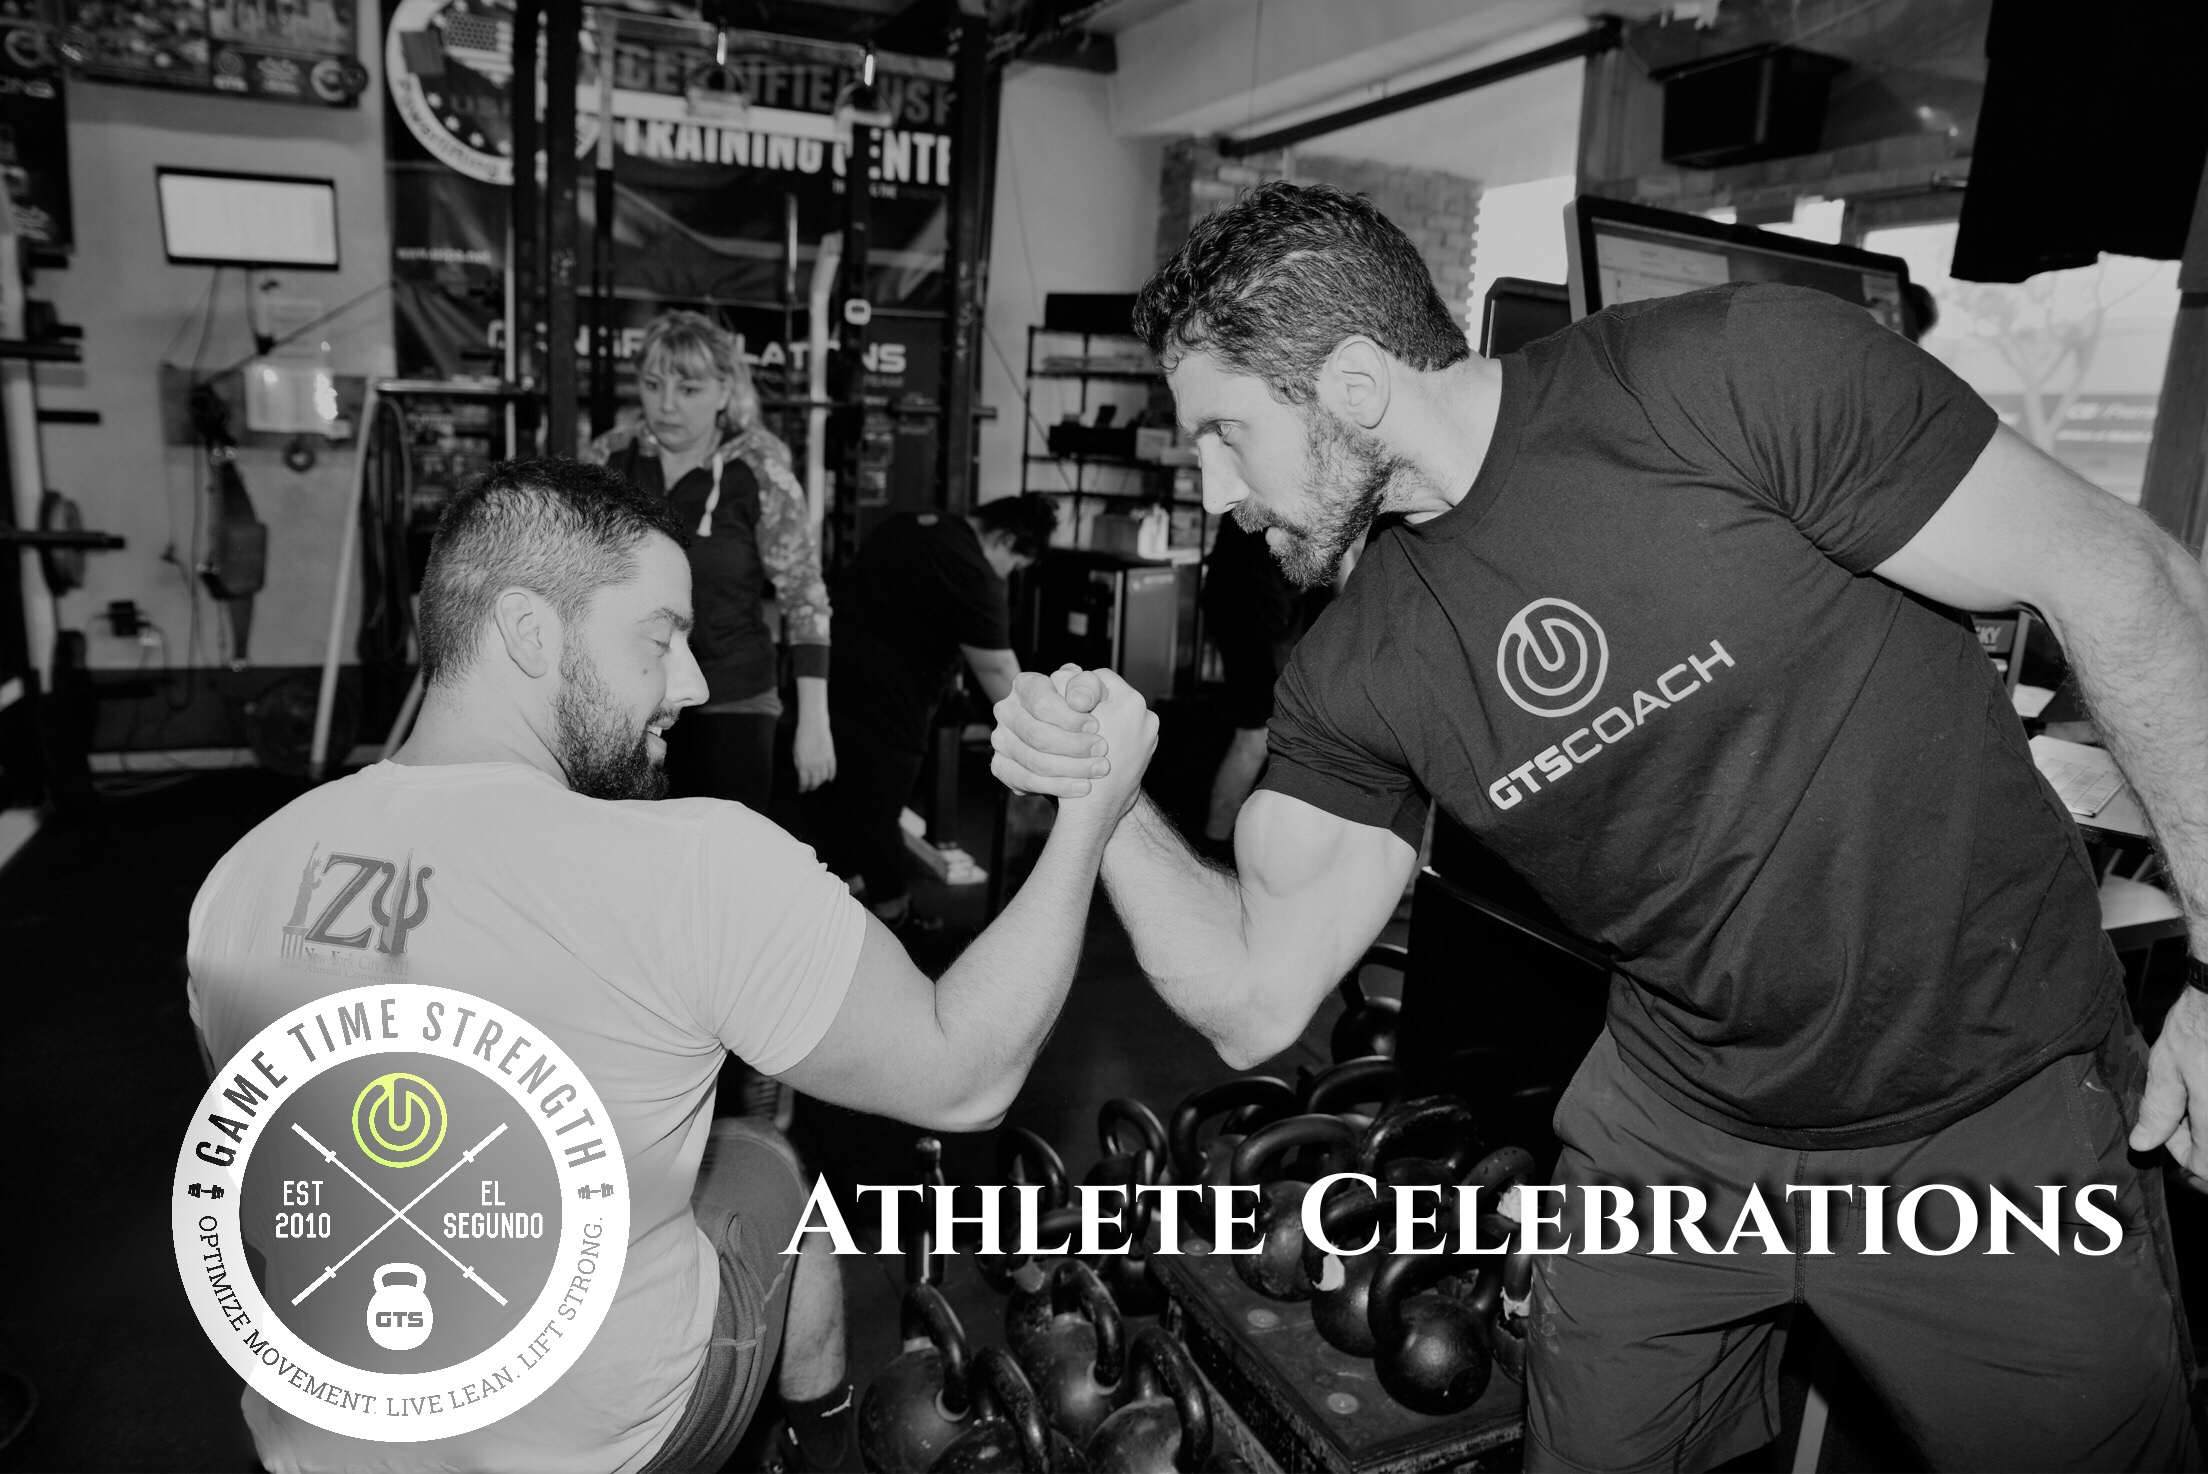 Athlete Celebrations - Game Time Strength Best El Segundo Los Angeles Strength Barbell Gym.JPG